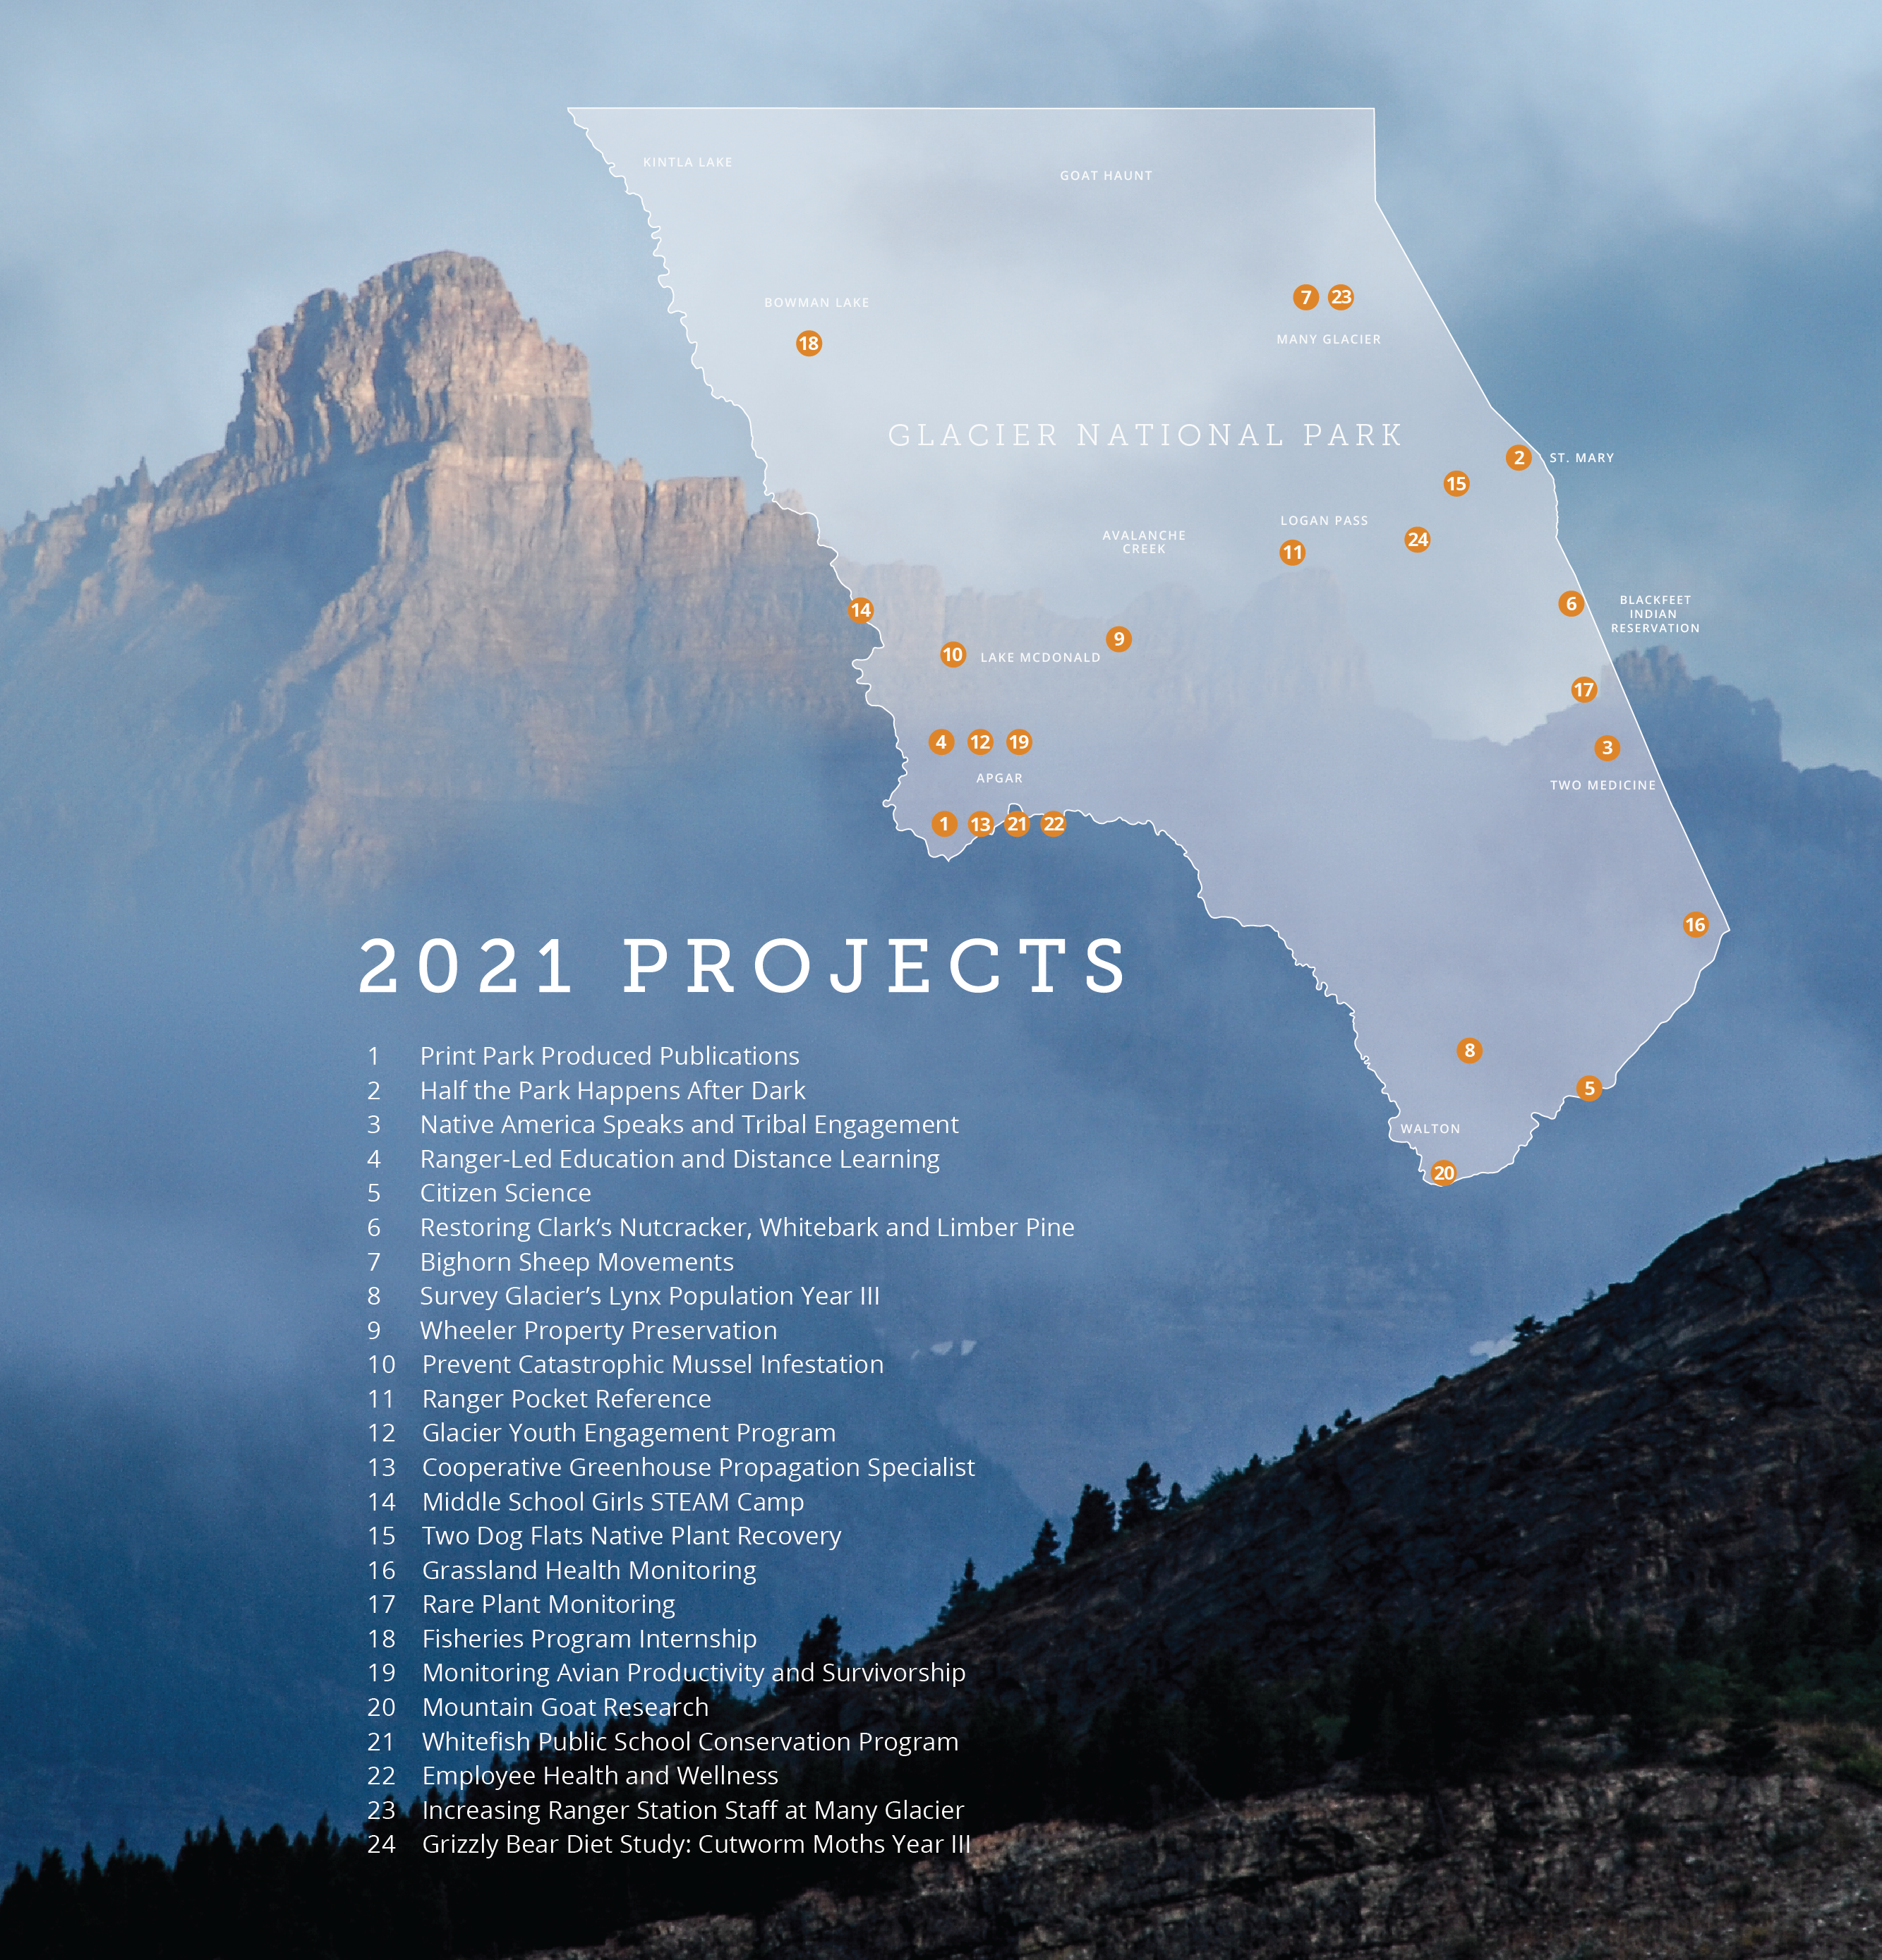 Map of Glacier National Park showing 24 projects.